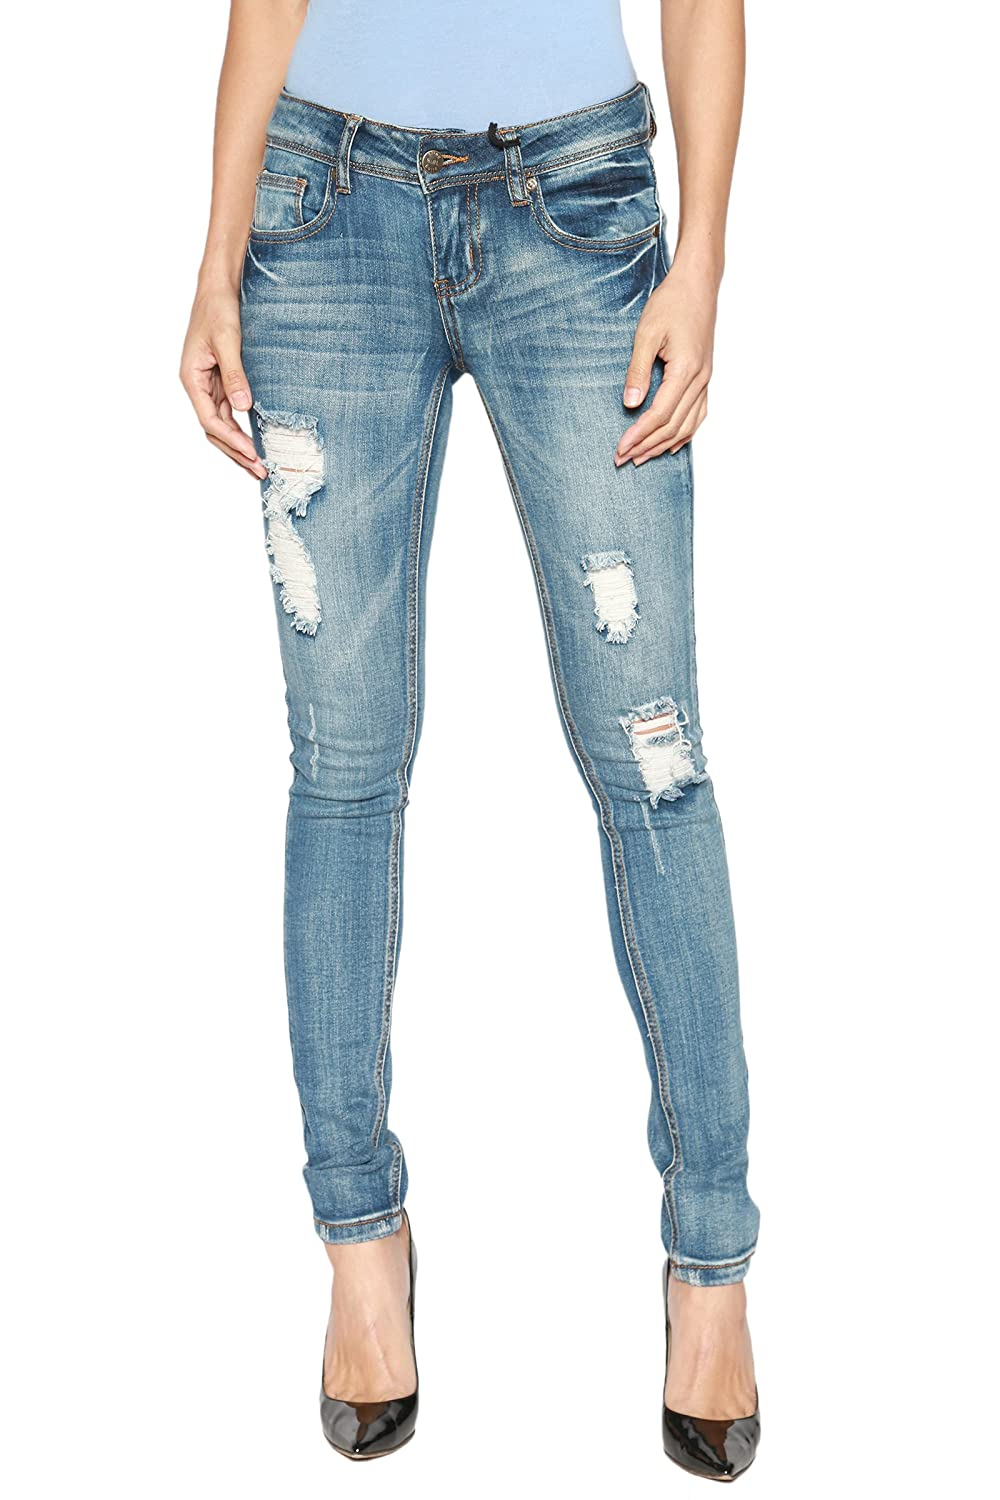 70eb932b47b41 Dark Blue Distressed jeans pants are comfortable and amazingly versatile.  Cotton-rich